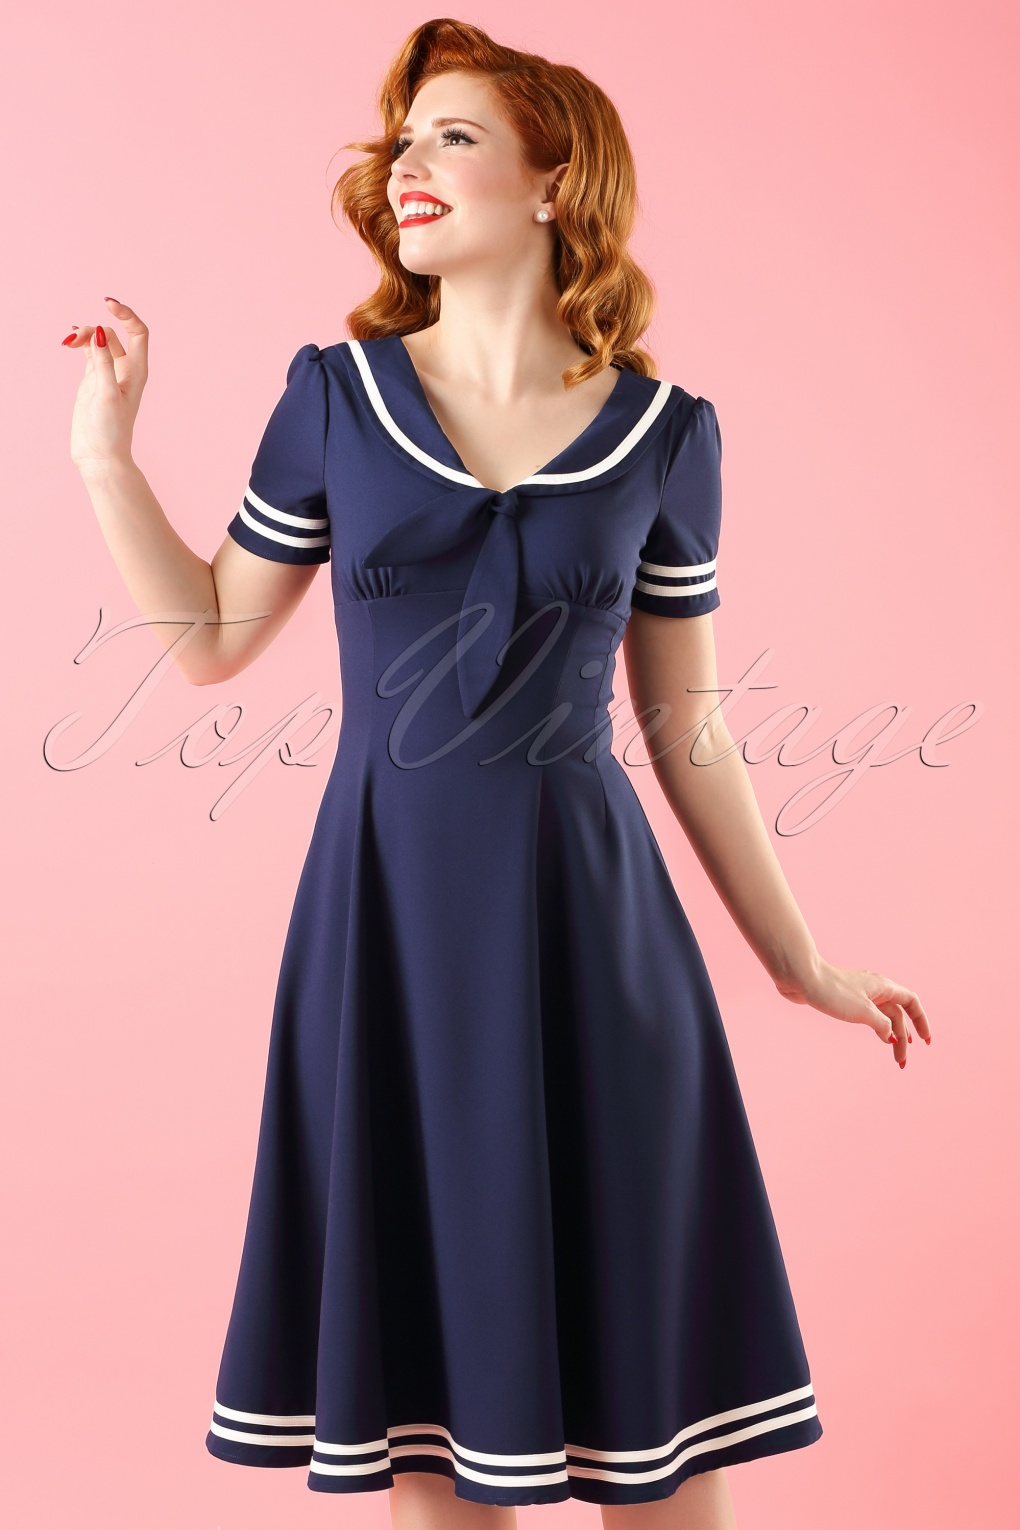 Agent Peggy Carter Costume, Dress, Hats 50s Ambleside Swing Dress in Navy £54.57 AT vintagedancer.com